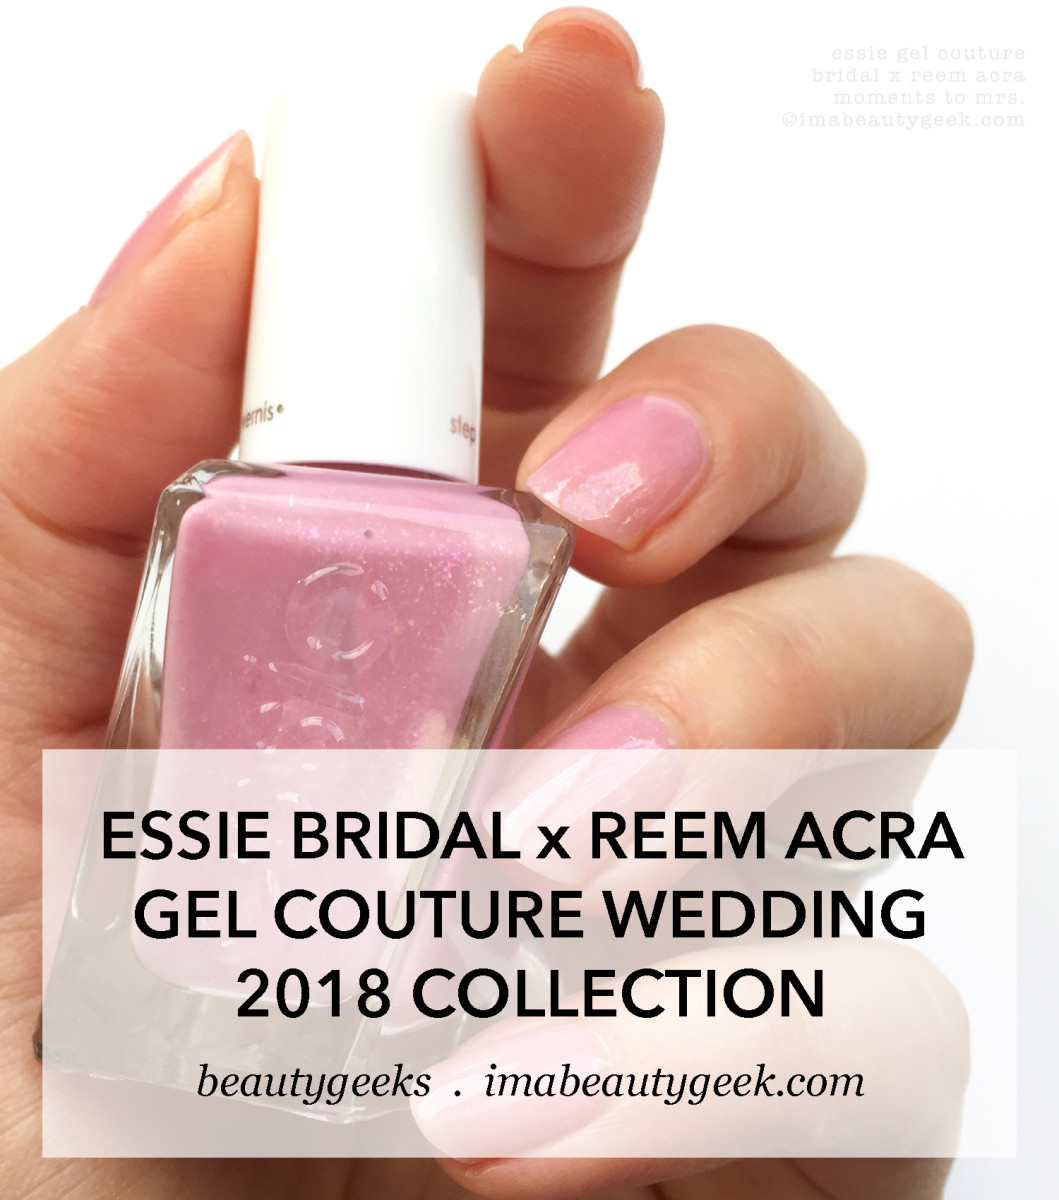 Essie Bridal x Reem Acra Gel Couture Wedding 2018 collection swatches and review-MANIGEEK-BEAUTYGEEKS